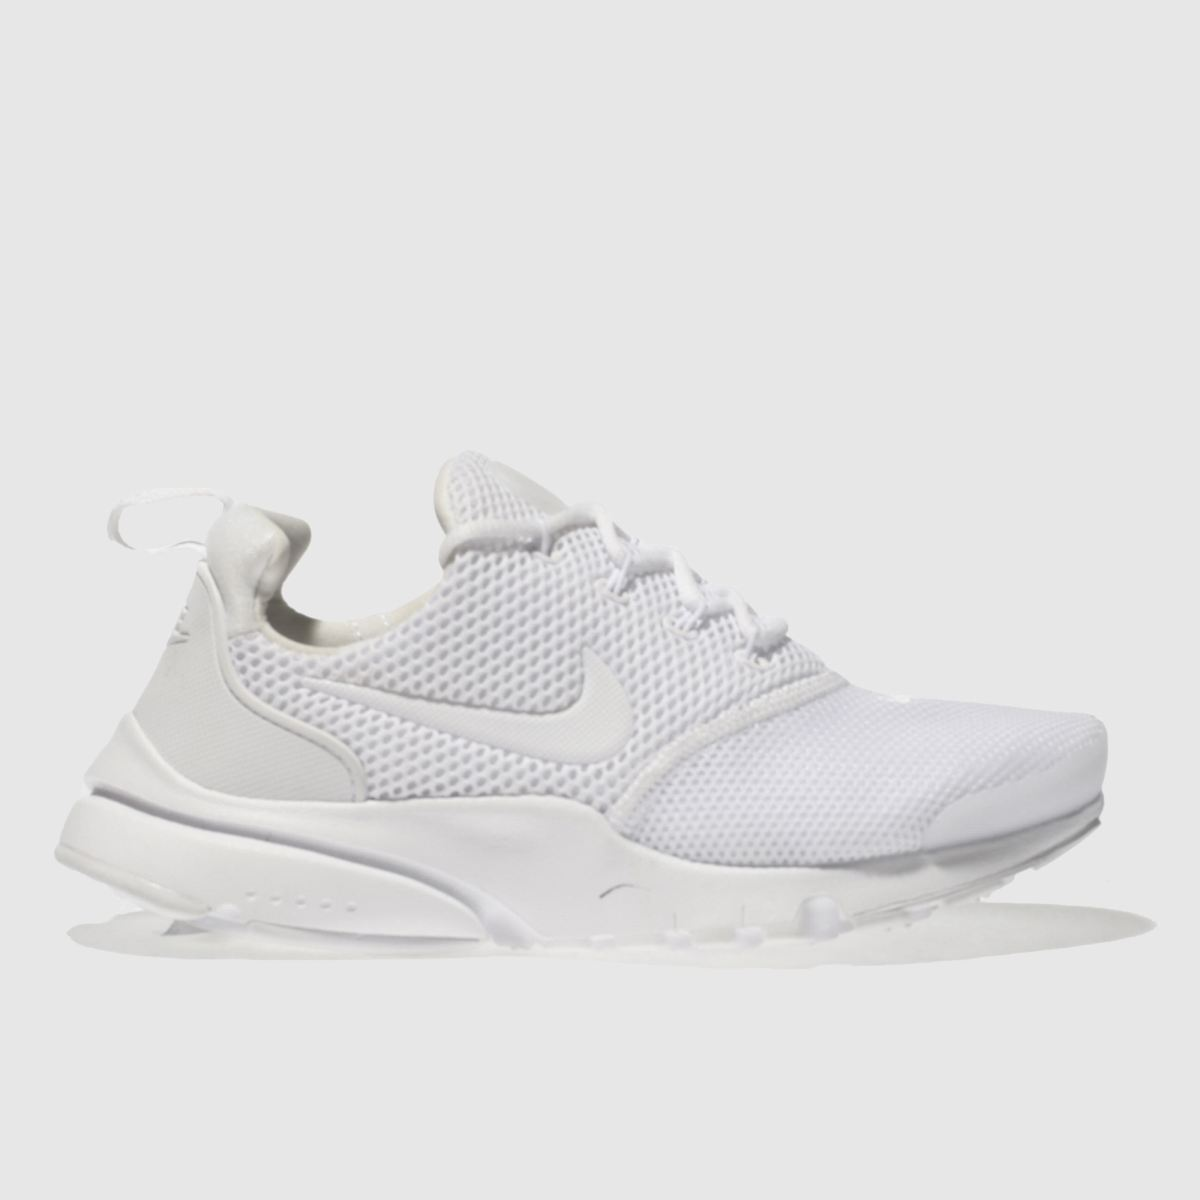 Nike White Presto Fly Trainers Youth